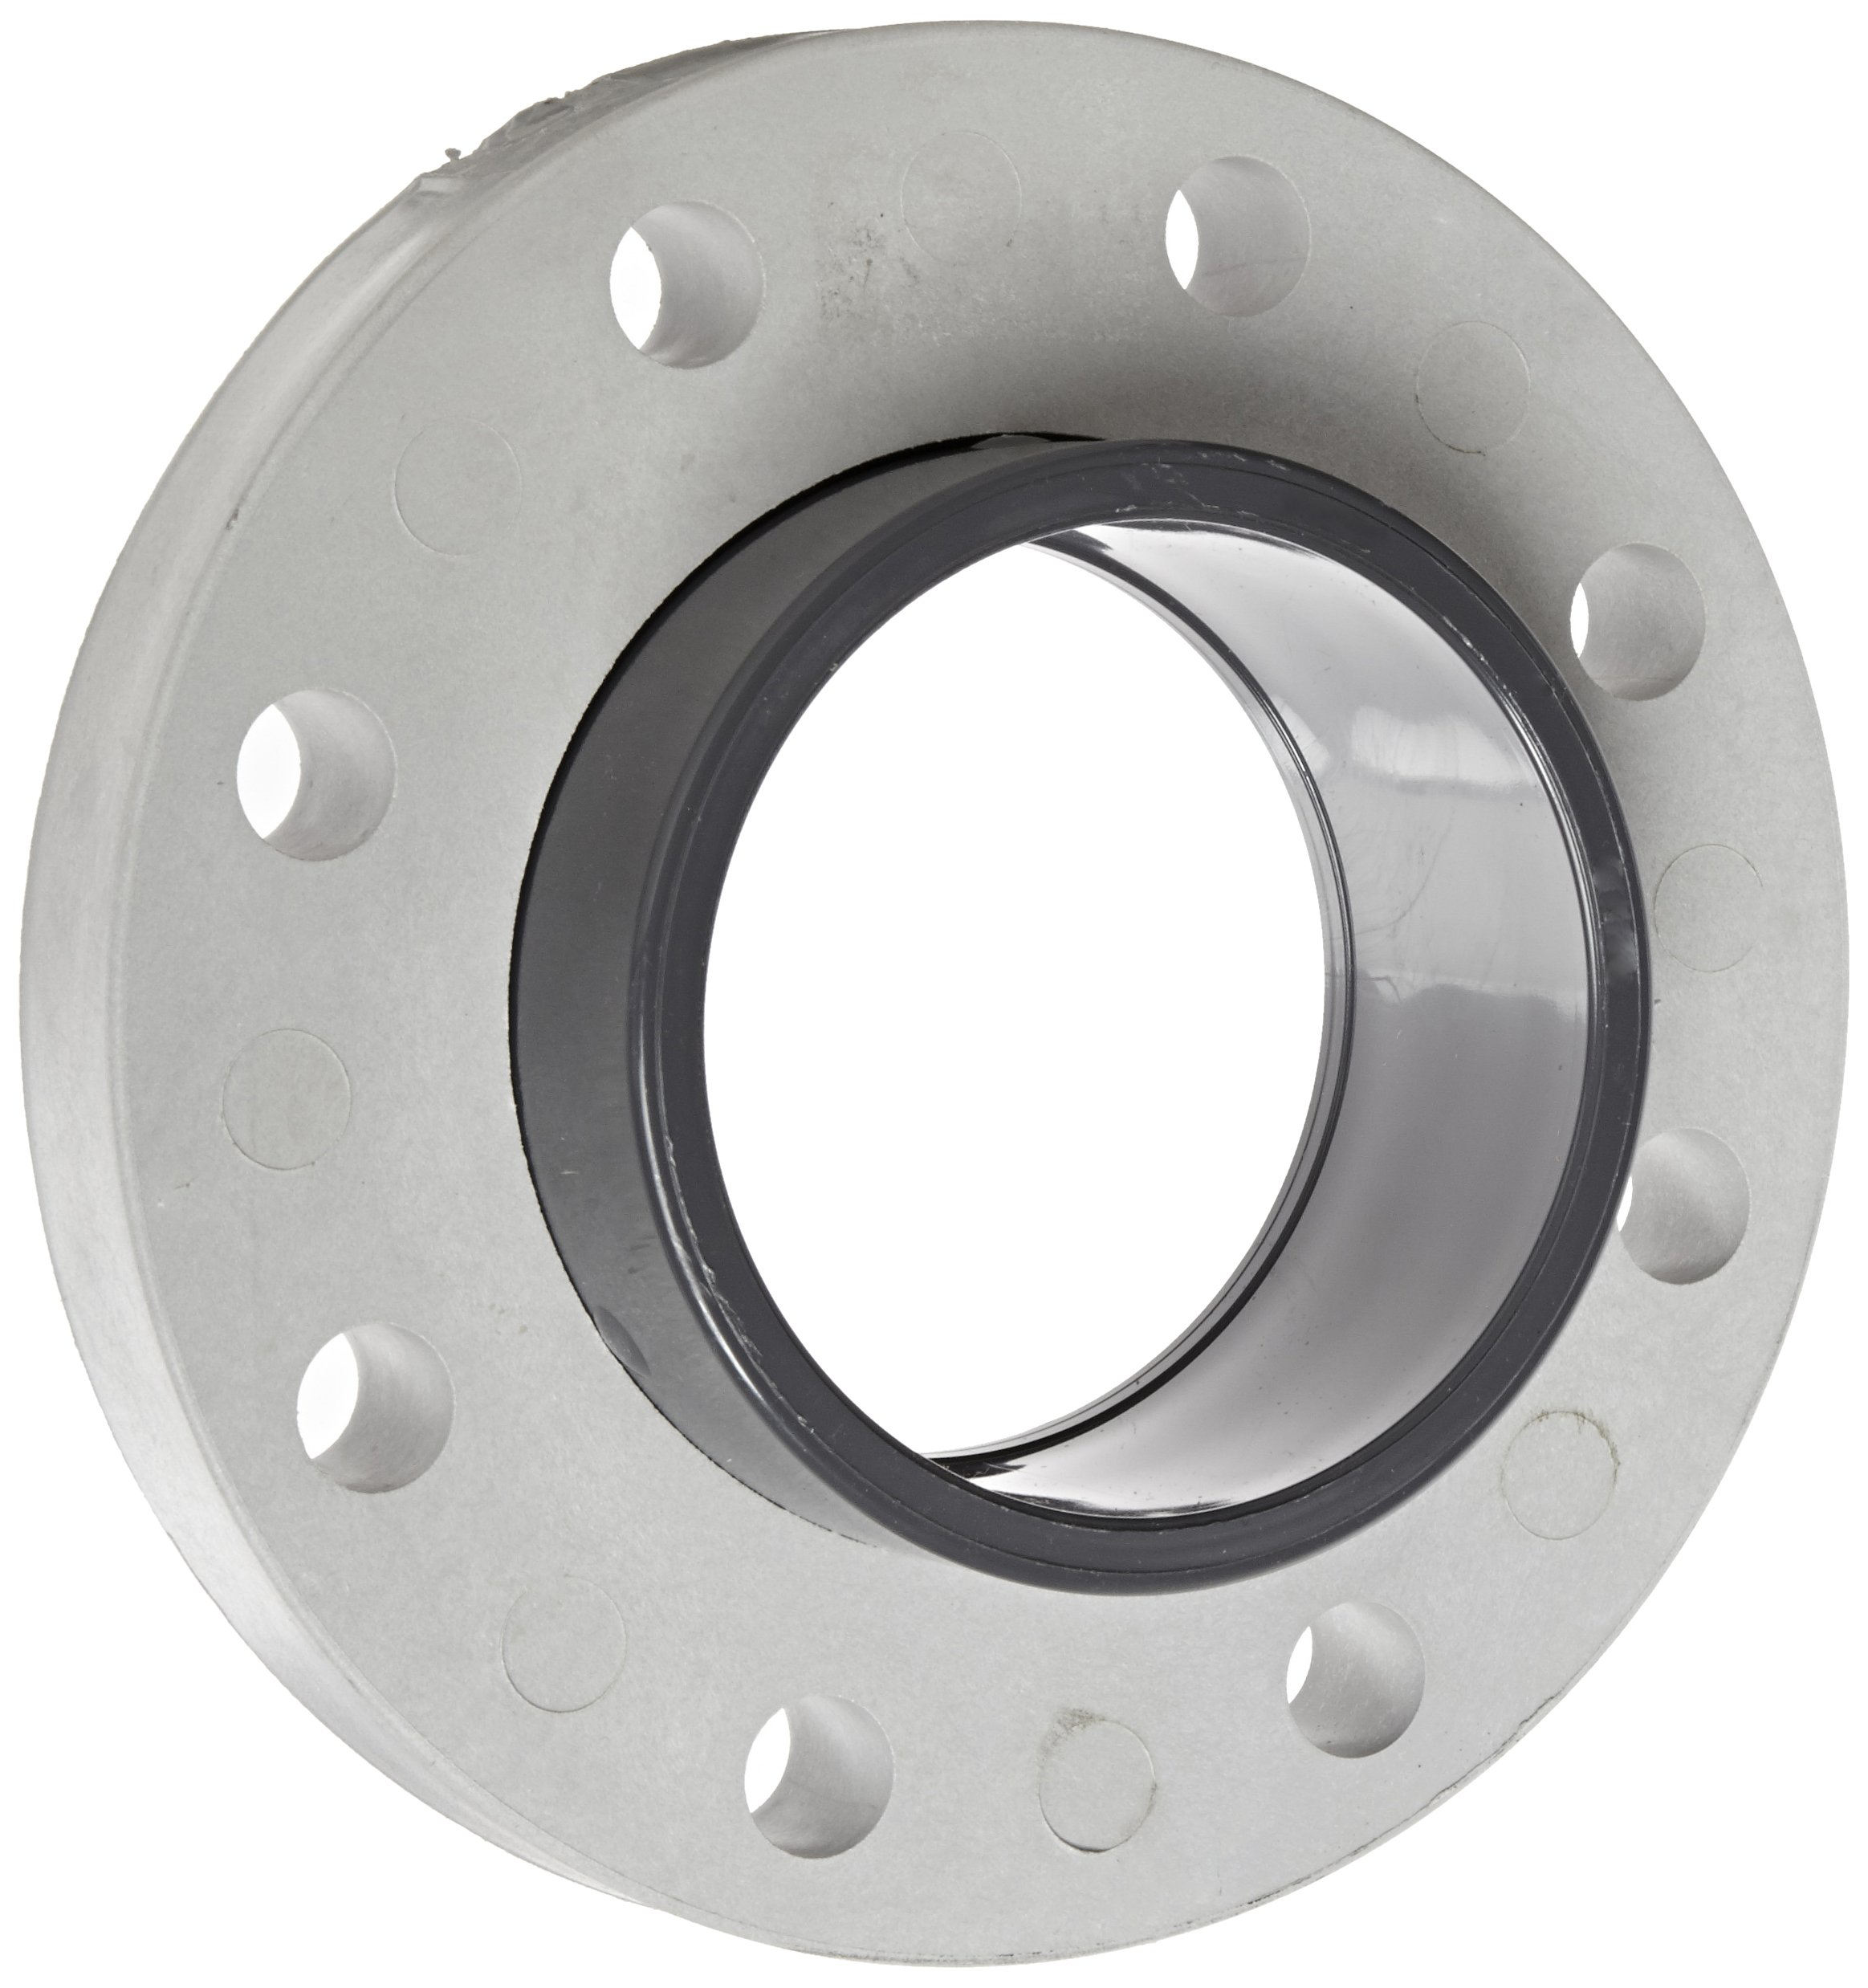 Spears 854-040 Glass-Filled PVC Pipe Fitting, Van Stone Flange, Class 150, Schedule 80, 4'' Socket